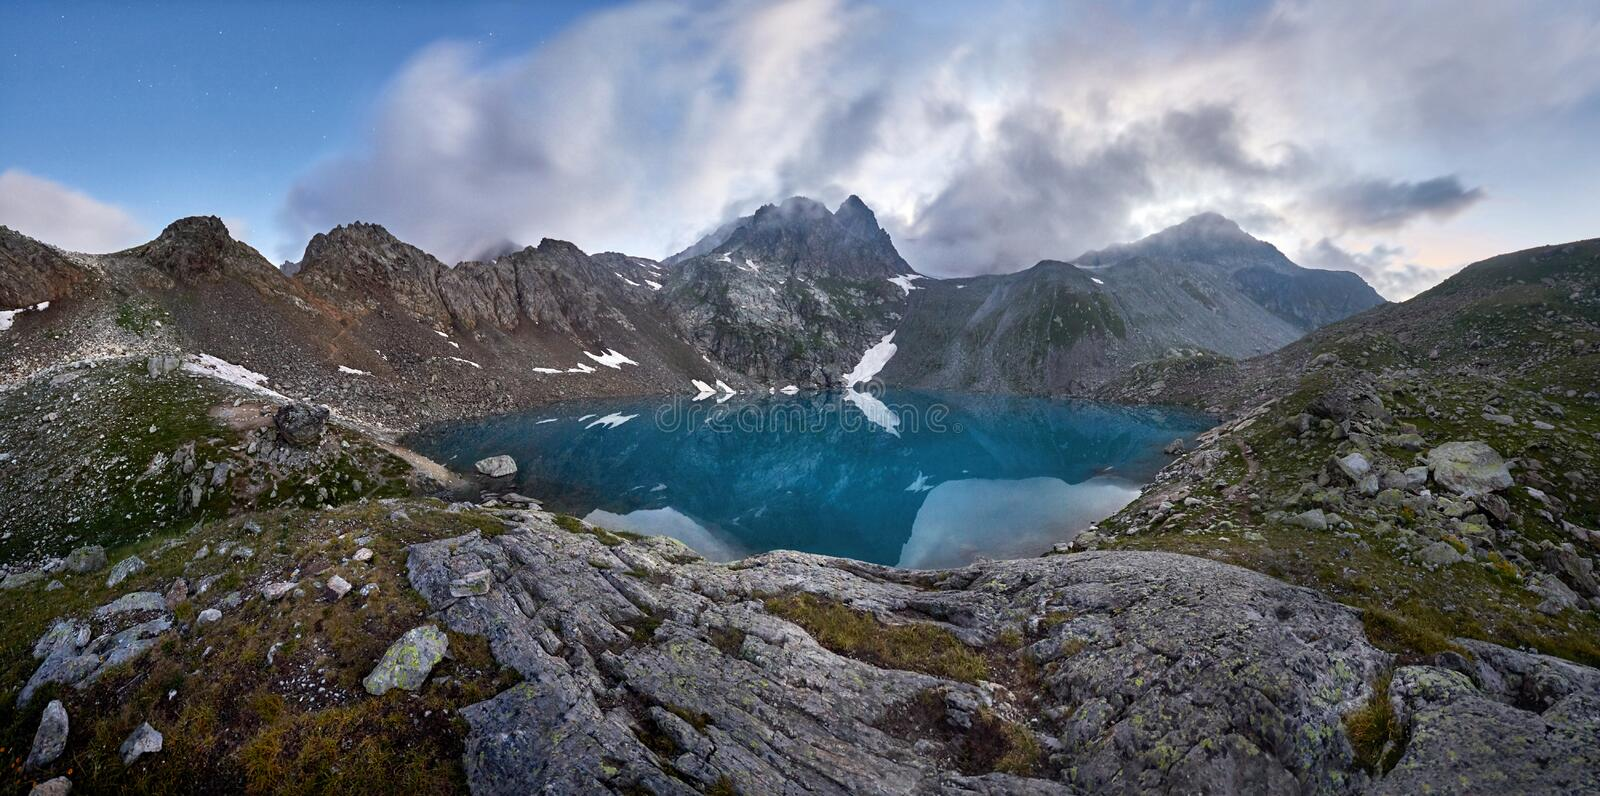 Panorama of Blue mountain lake high in the mountains. Untouched. Wilderness, no one around. Turquoise lake and the melting glaciers stock photos